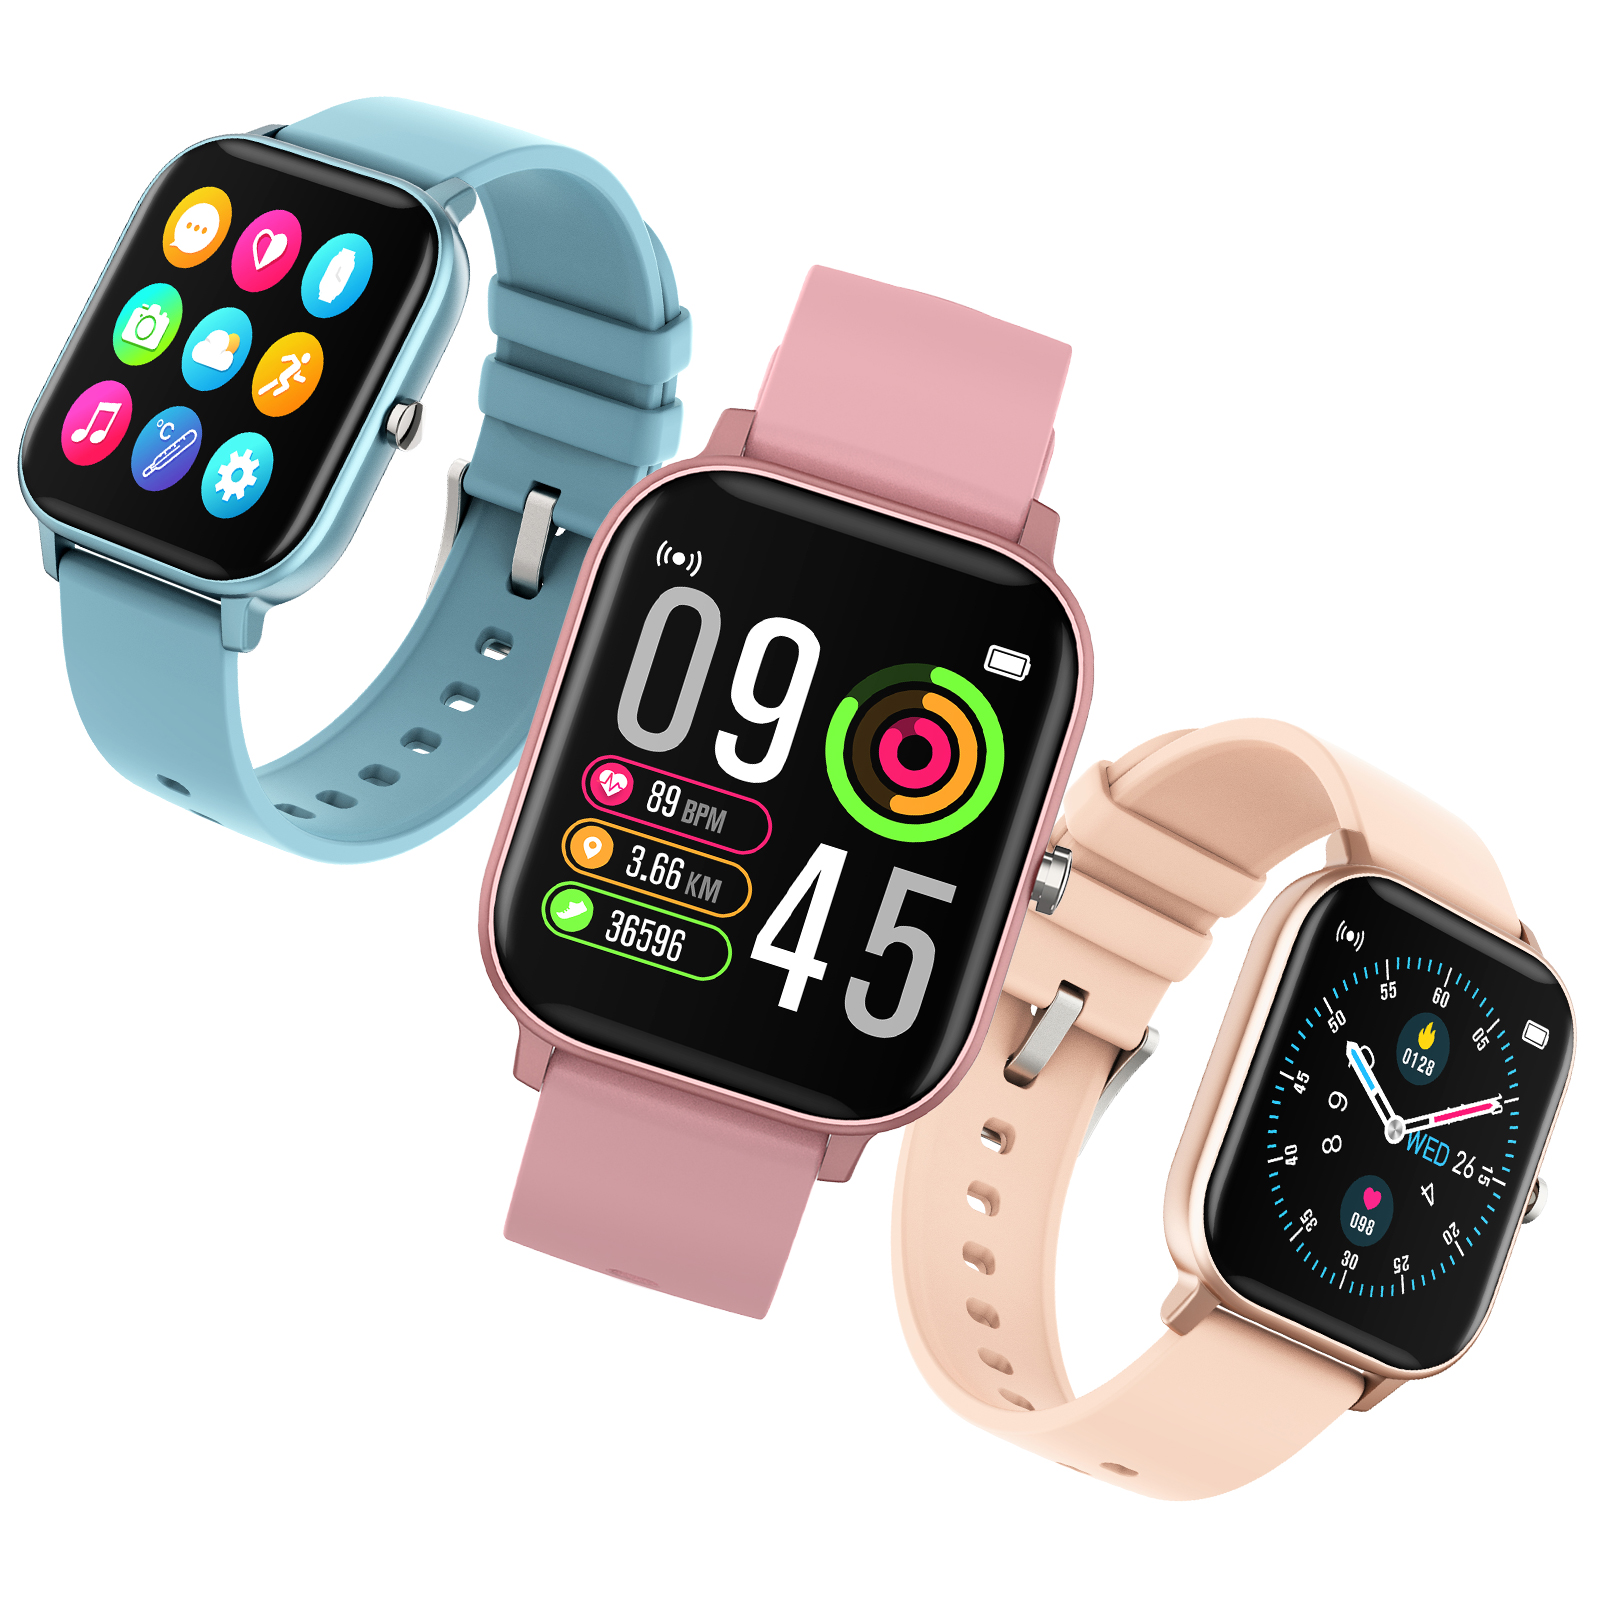 COLMI P8 Pro Smart Watch with Heart Rate Monitor 2